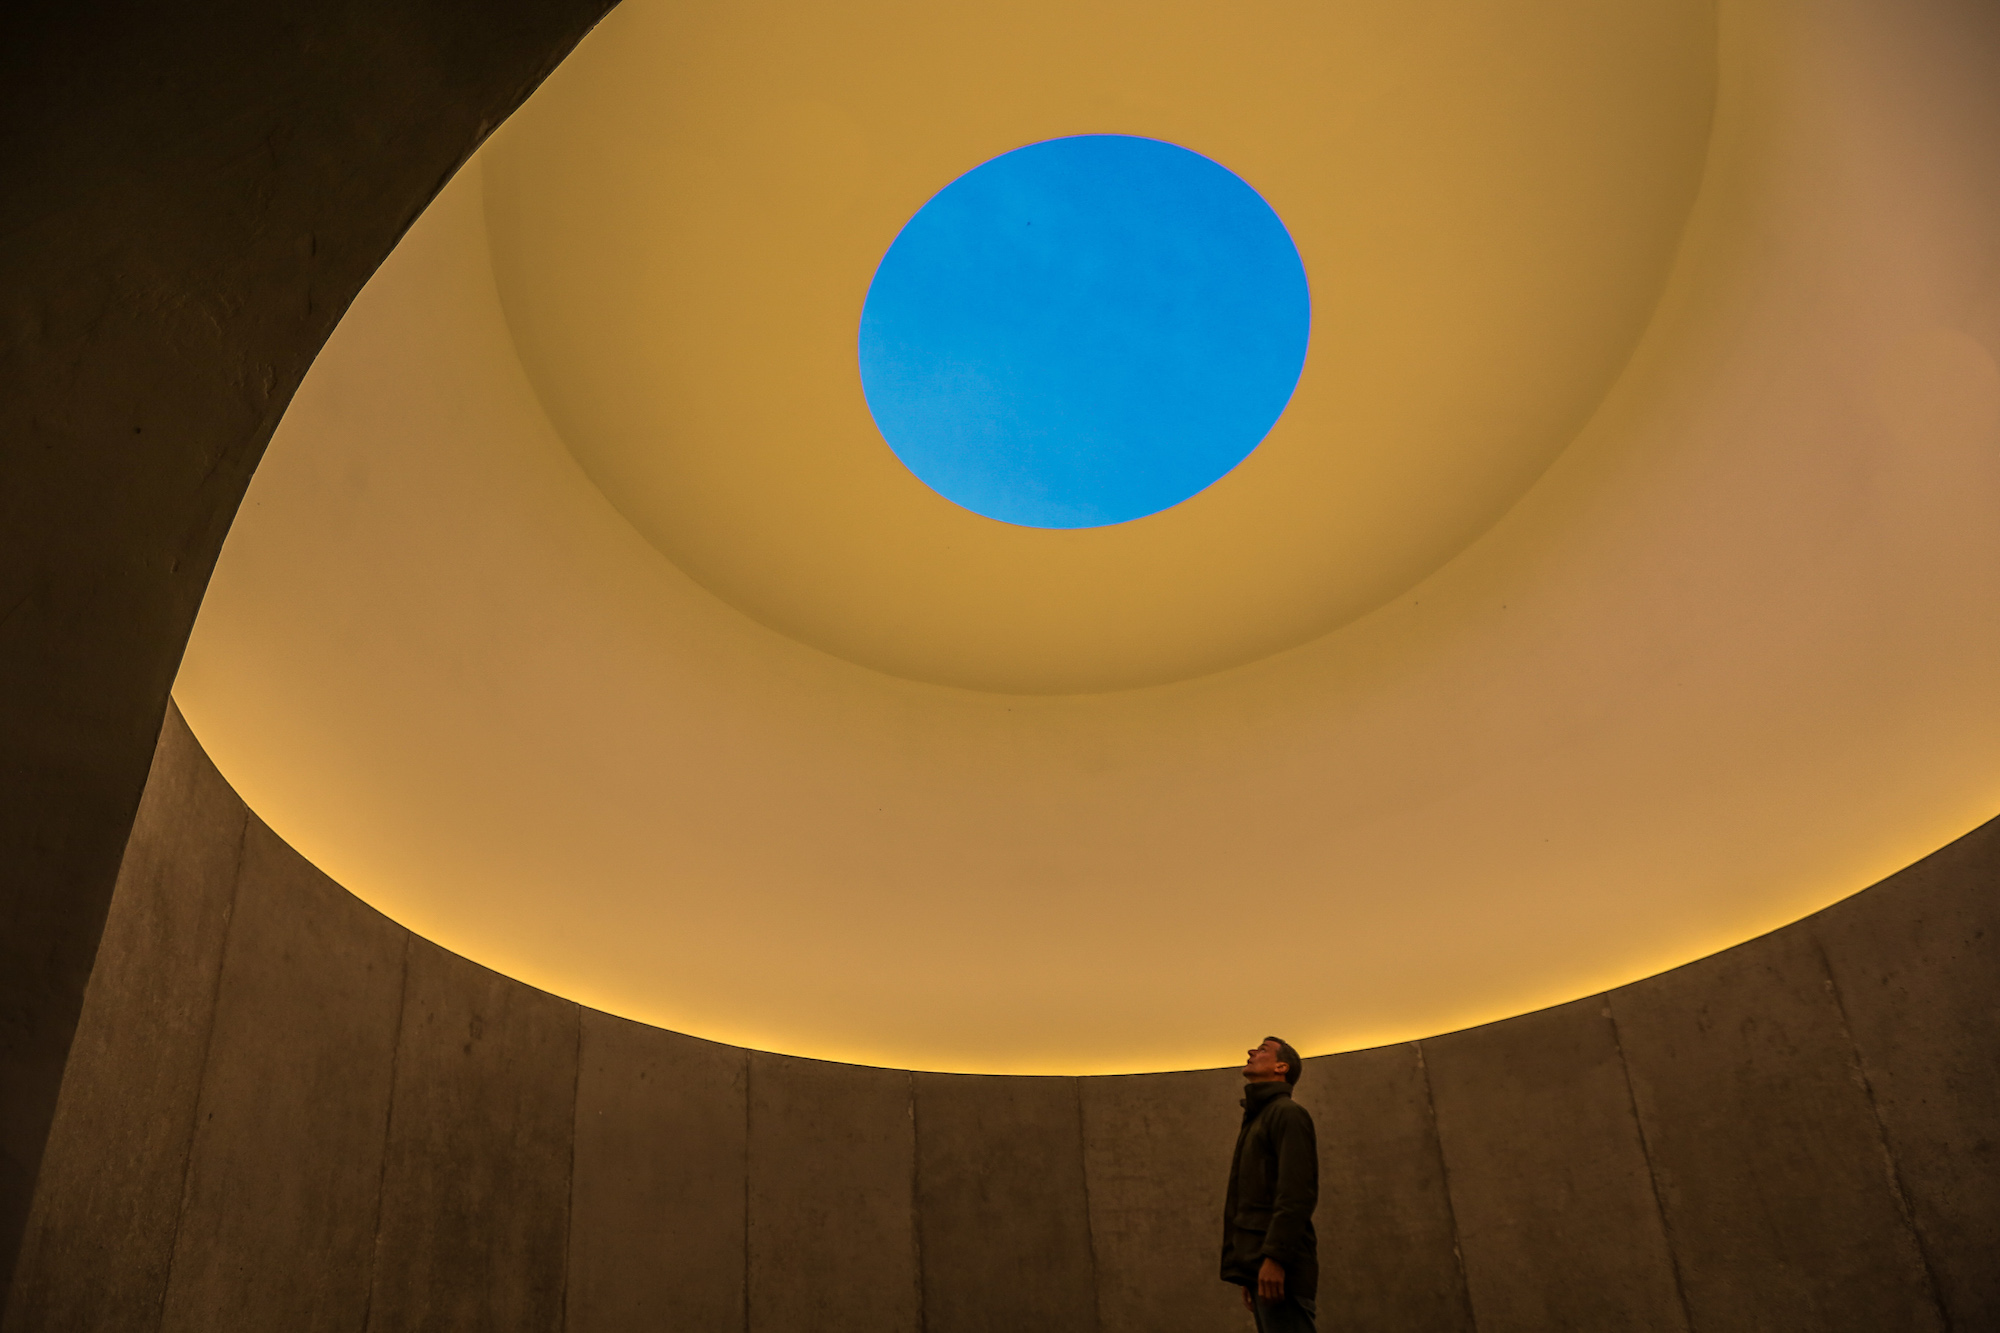 eleanor-bell-light-art-james-turrell-skyspace-lighting